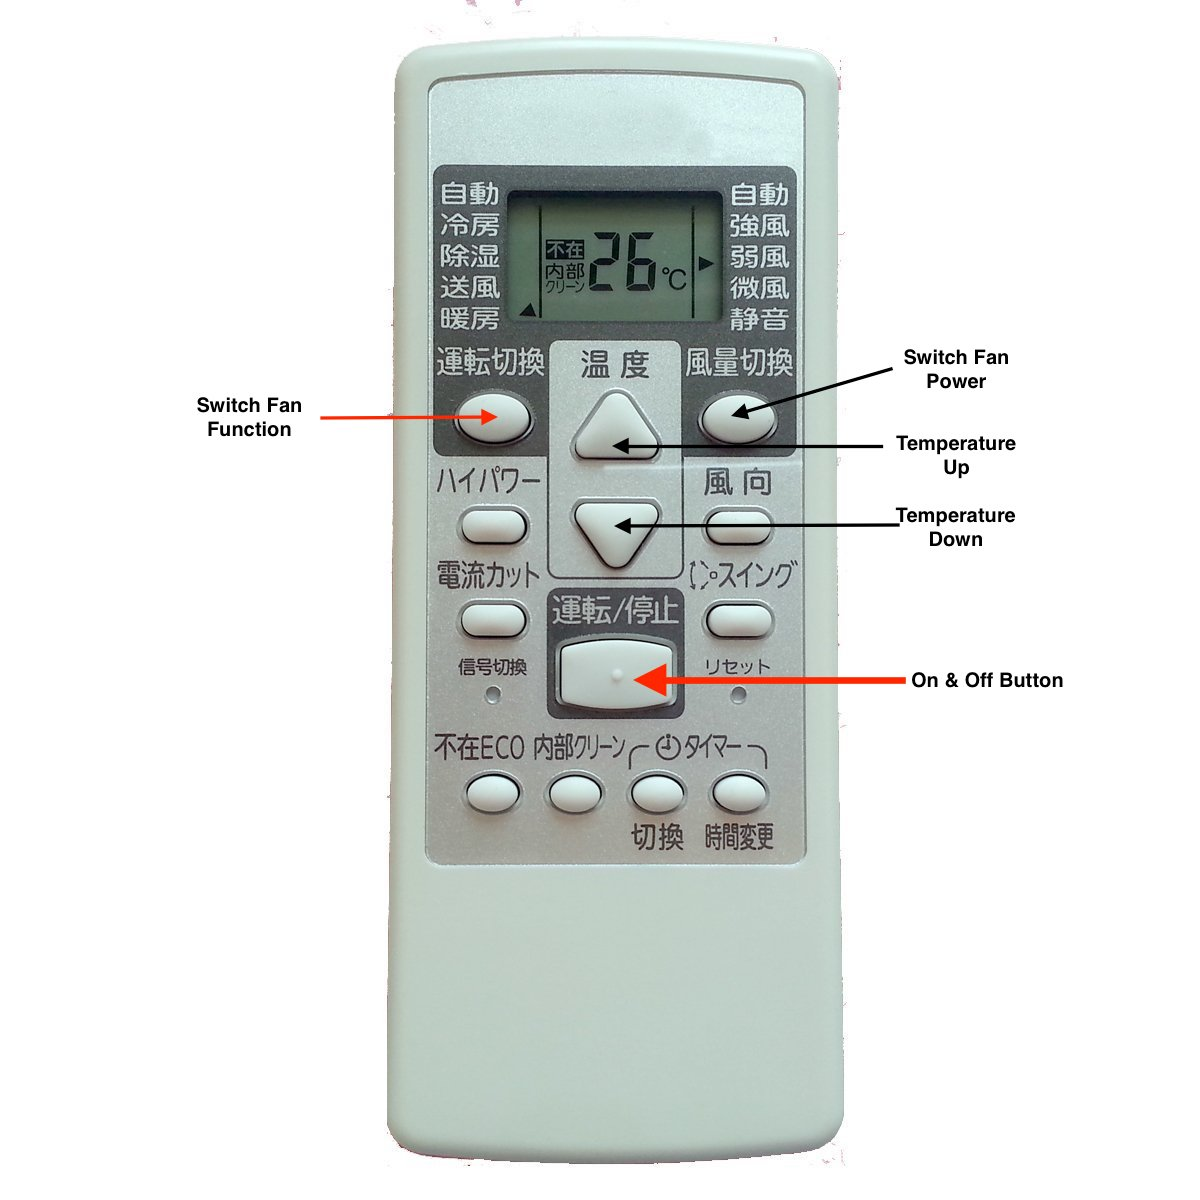 Japanese Air Conditioner Remote Control Blog